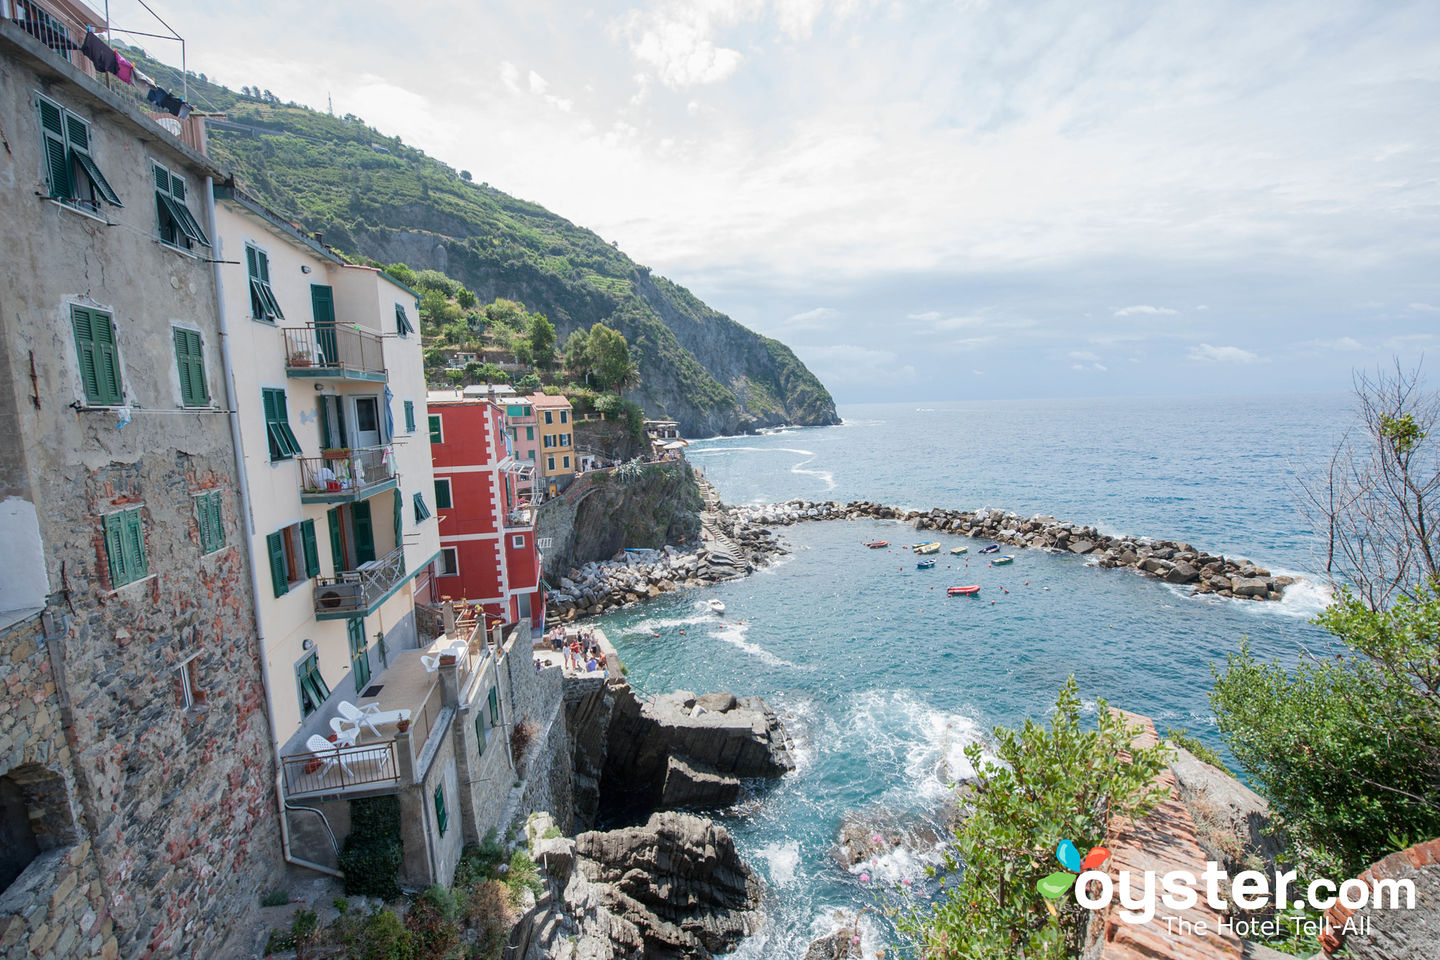 How to Get Around Cinque Terre